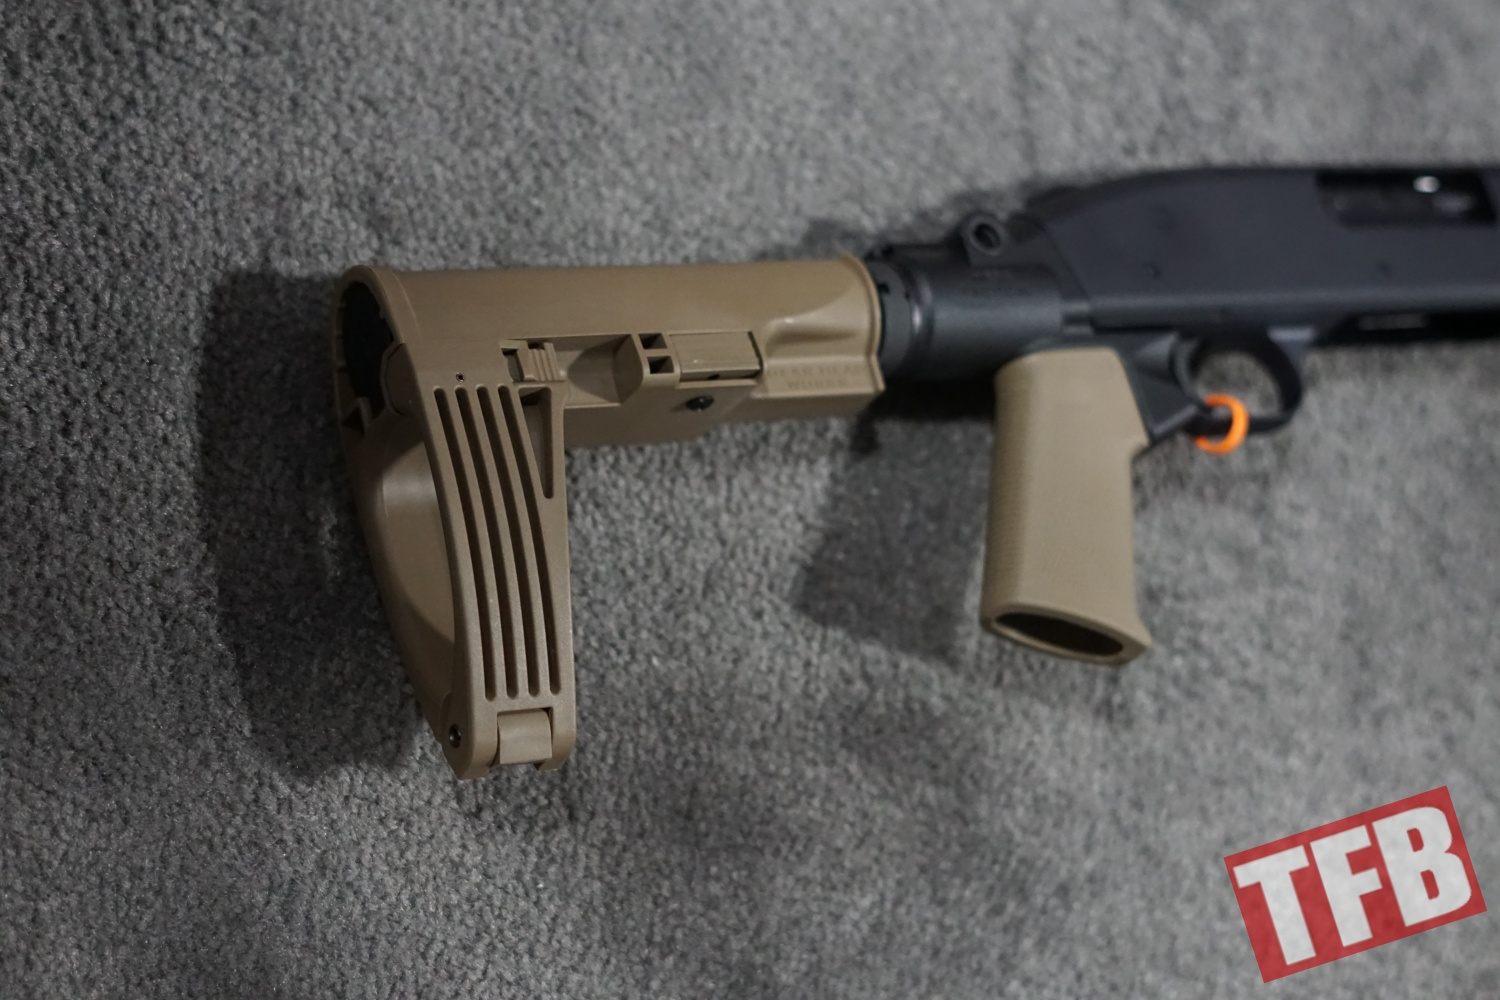 SHOT 2018] Gear Head Works Tailhook Mod 2 Introduced -The